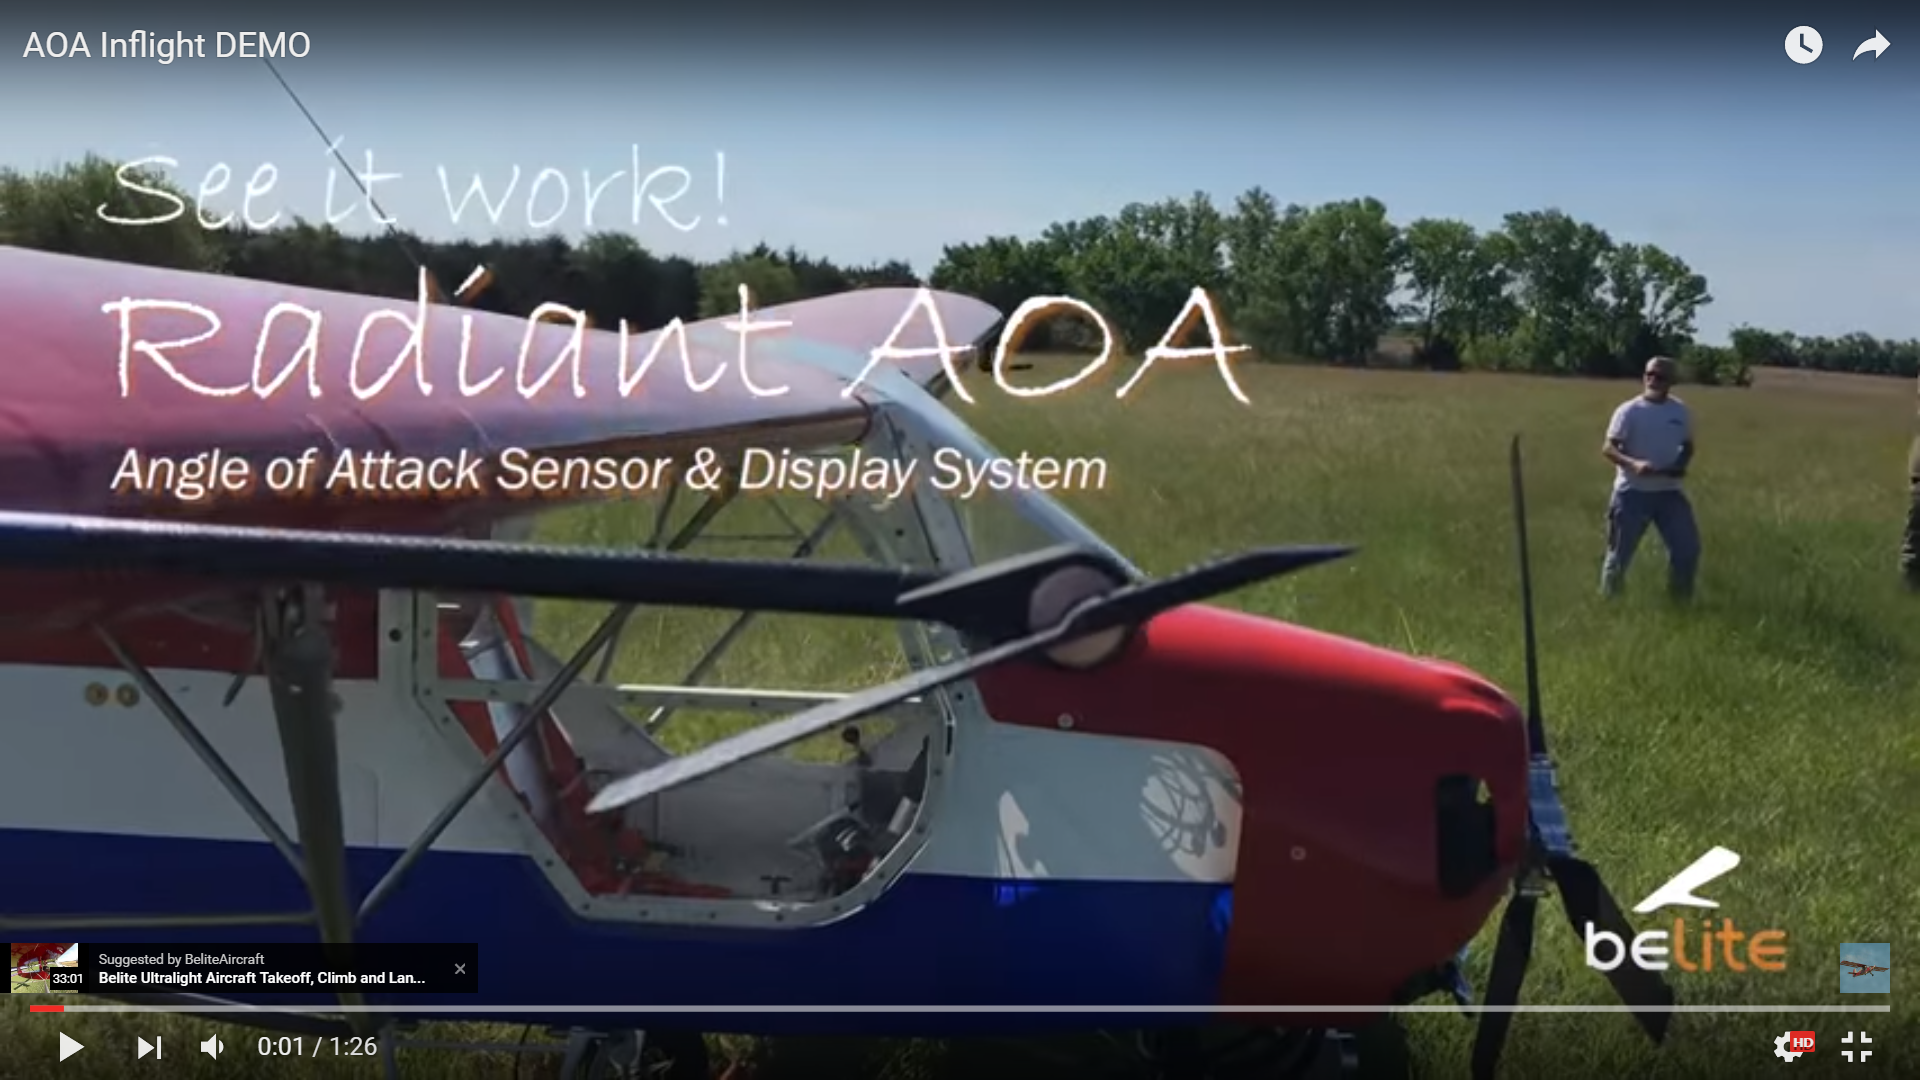 aoa-inflight-demo-video-pix.png